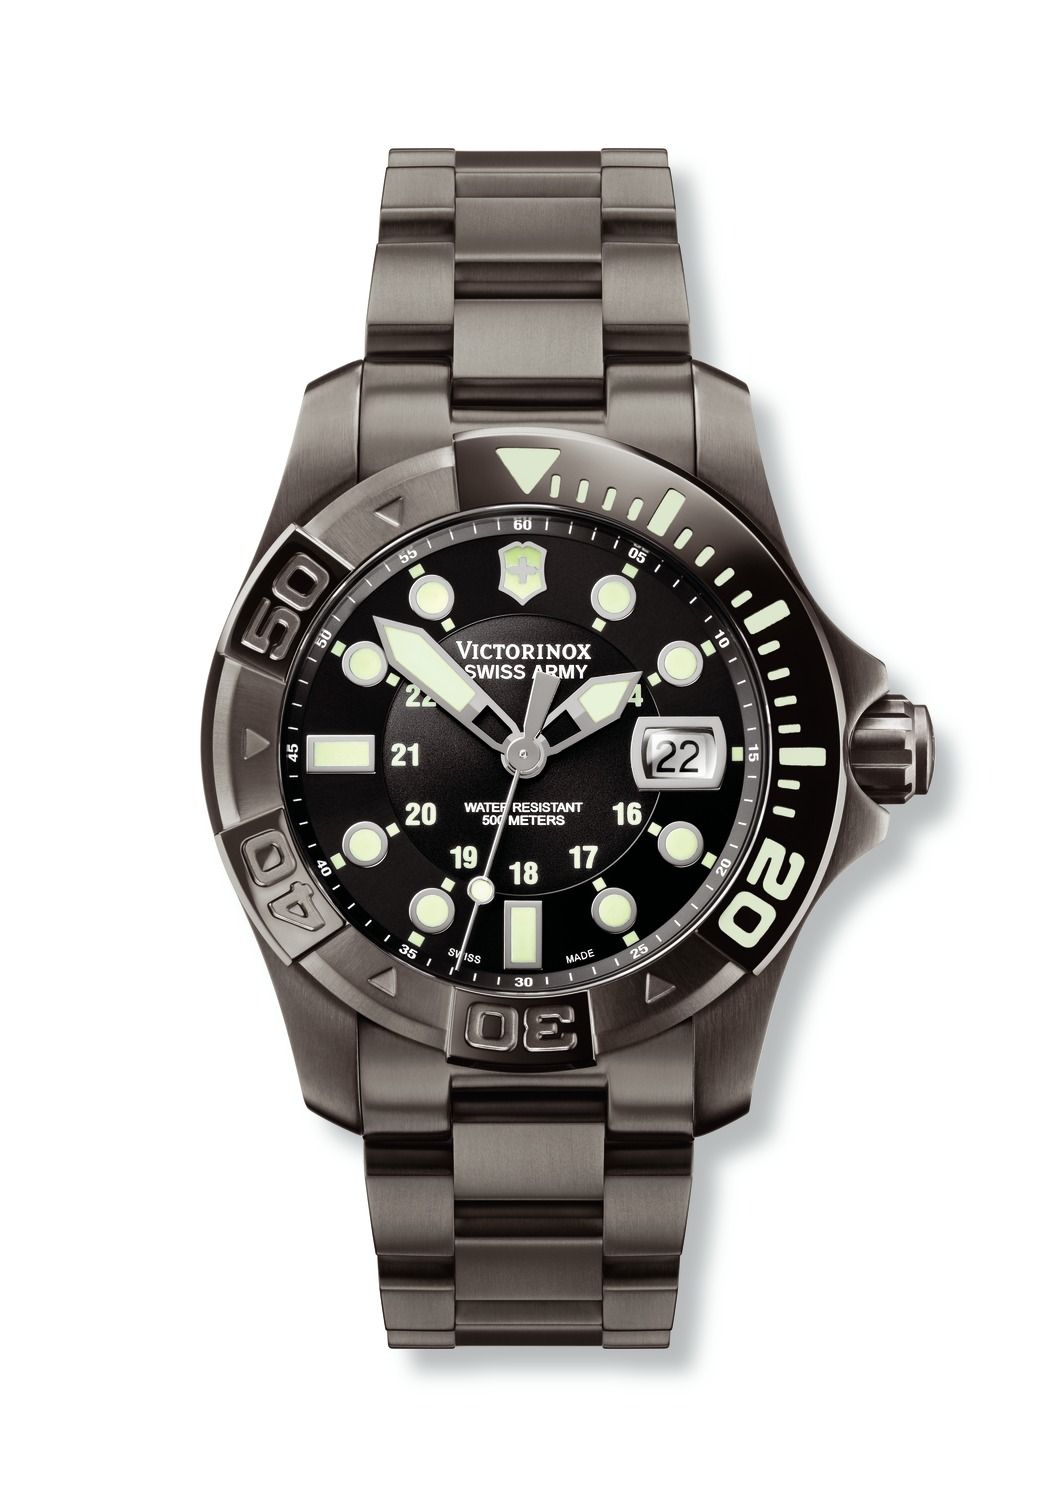 часы Victorinox Swiss Army Dive Master 500 Black Mecha